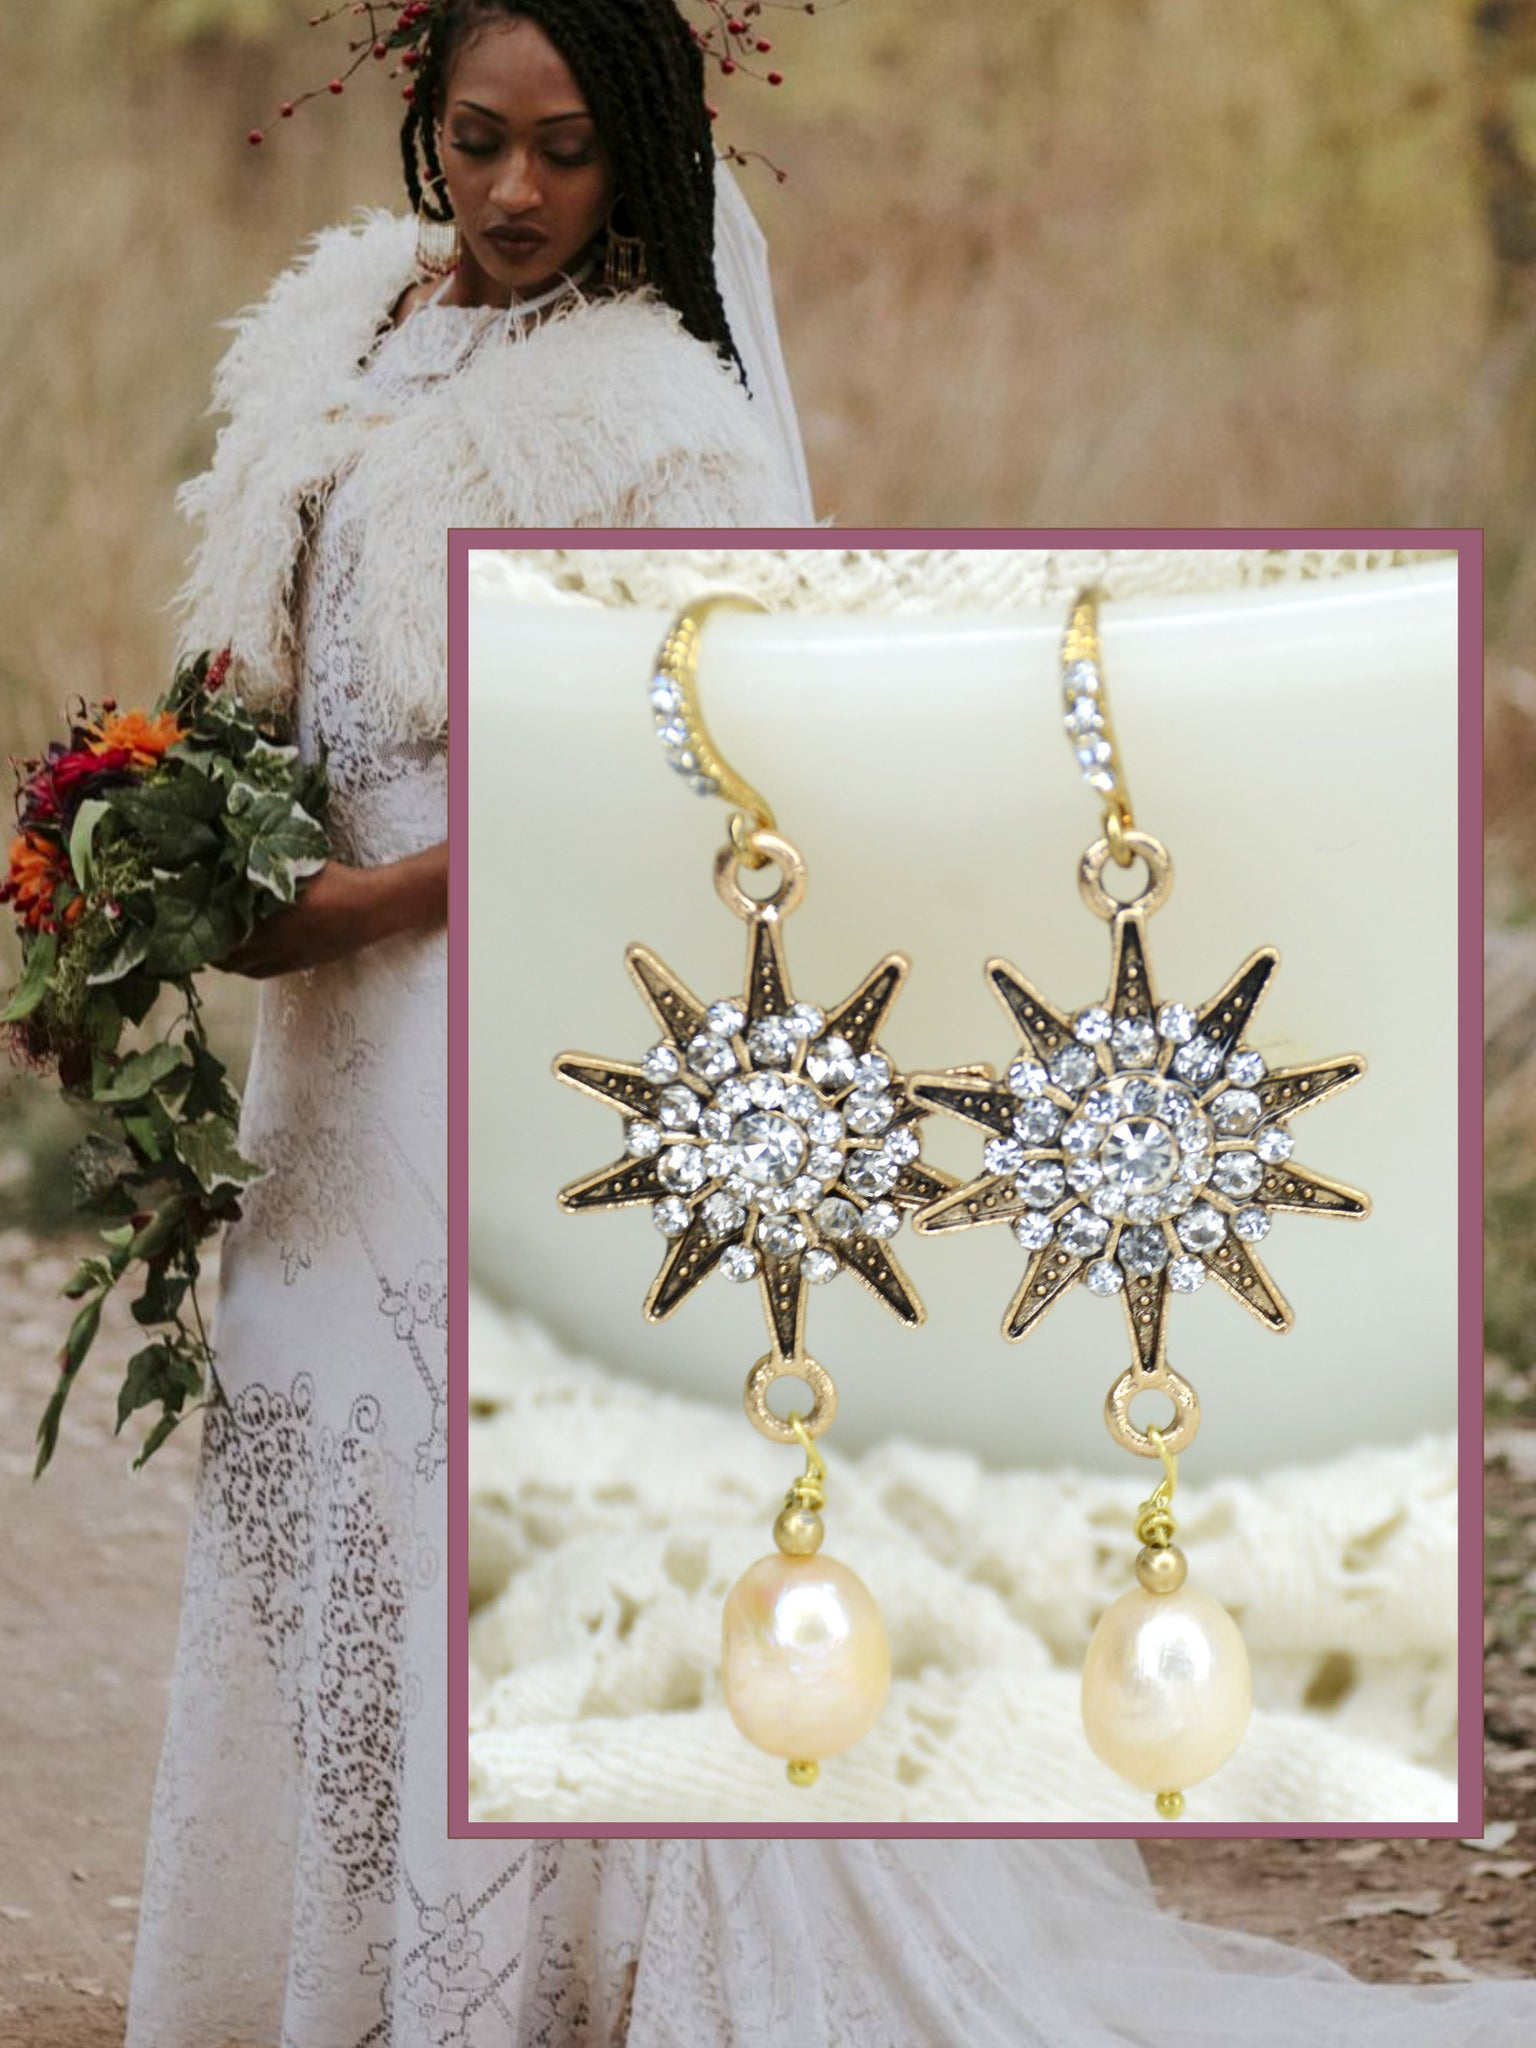 gold wedding drop earrings with stars and pearls.